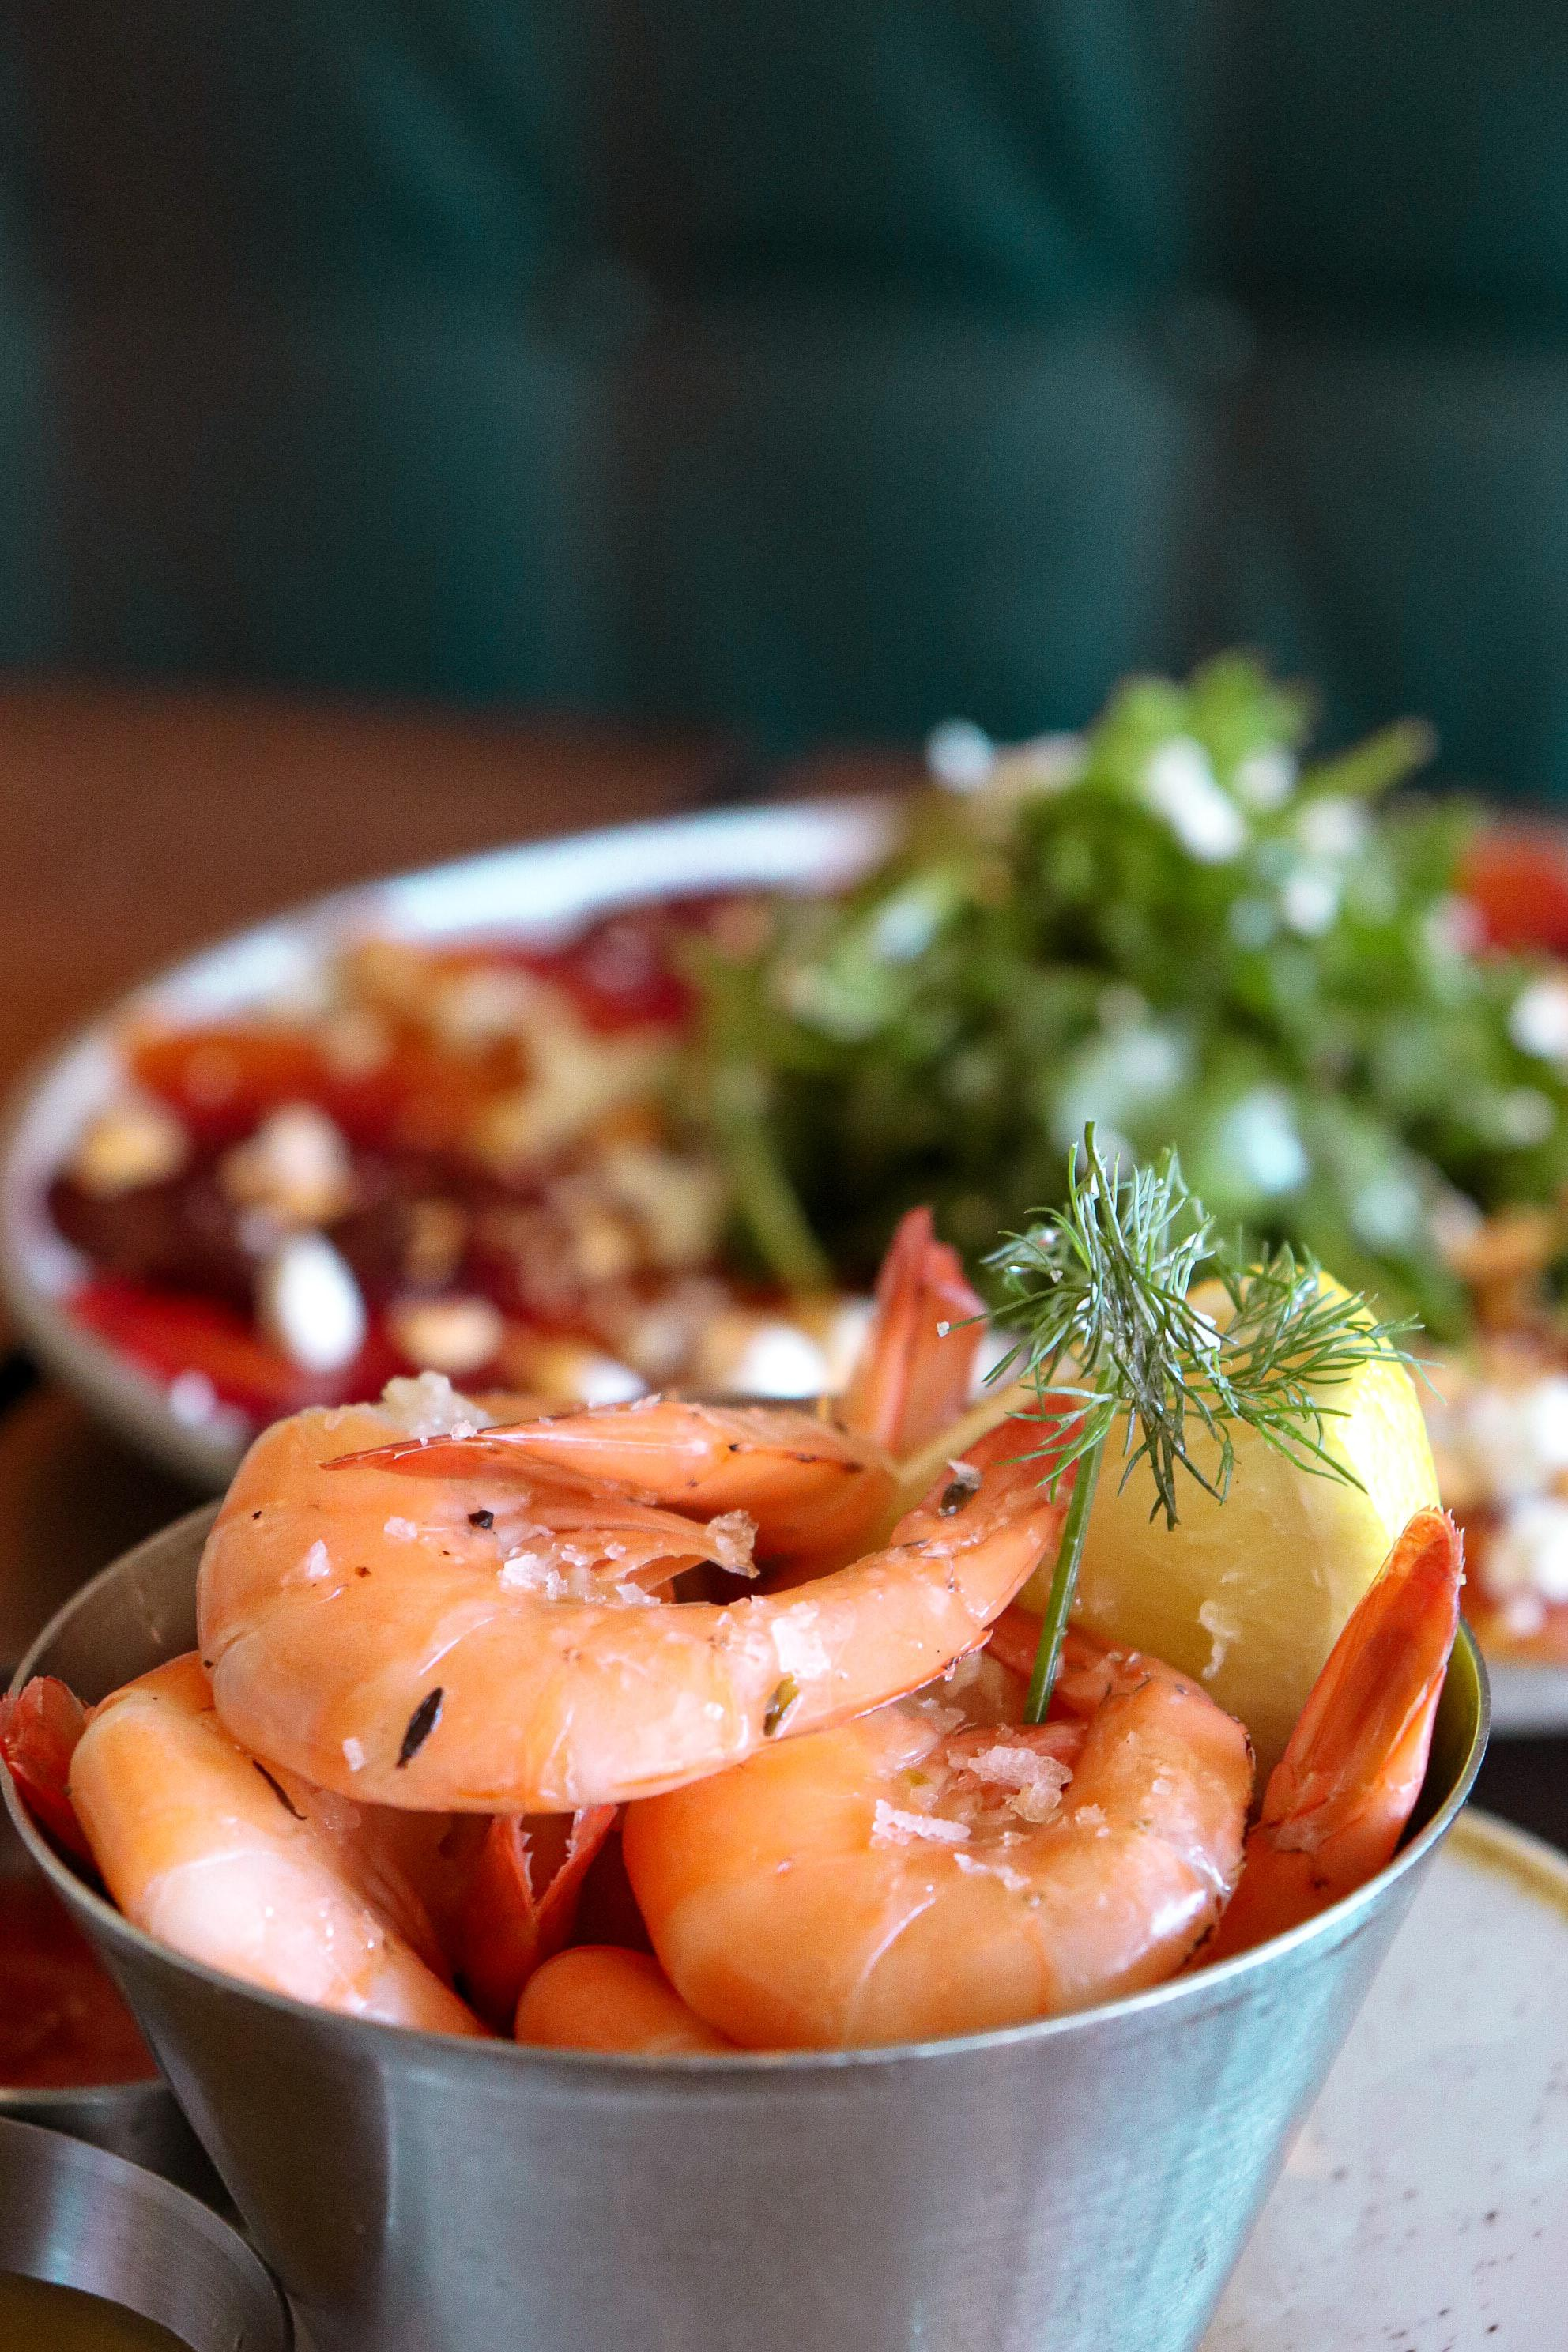 Raw shrimp in a bowl.